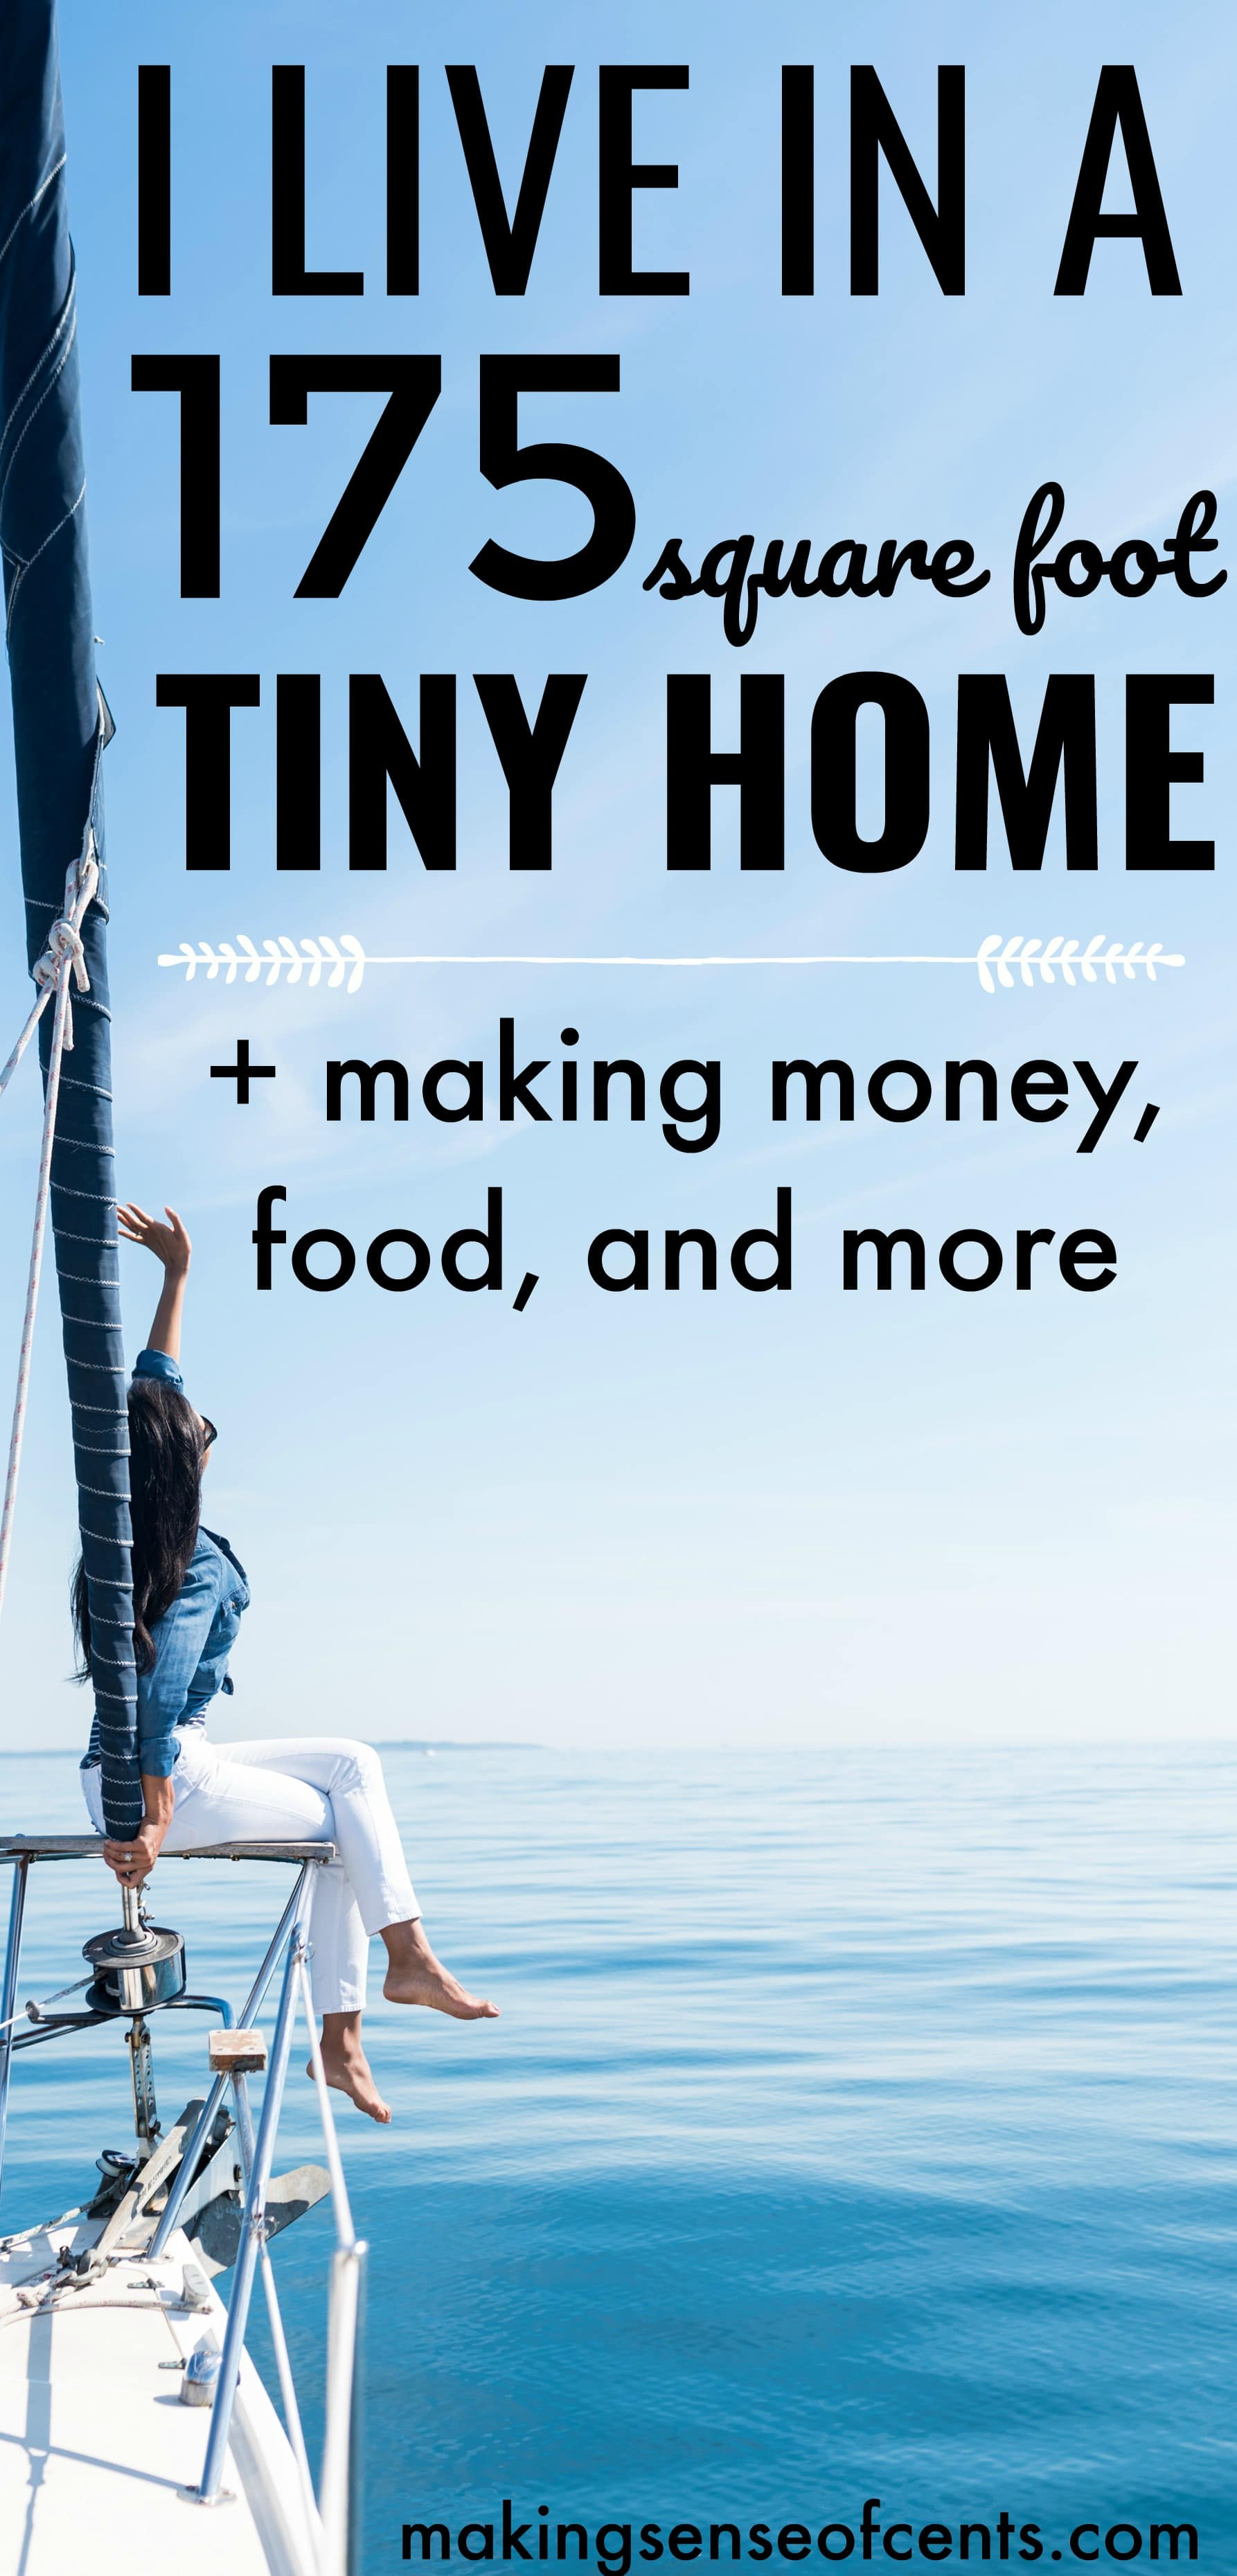 How I live in a 175 square foot tiny home - #sailboat #tinyliving #tinyhome